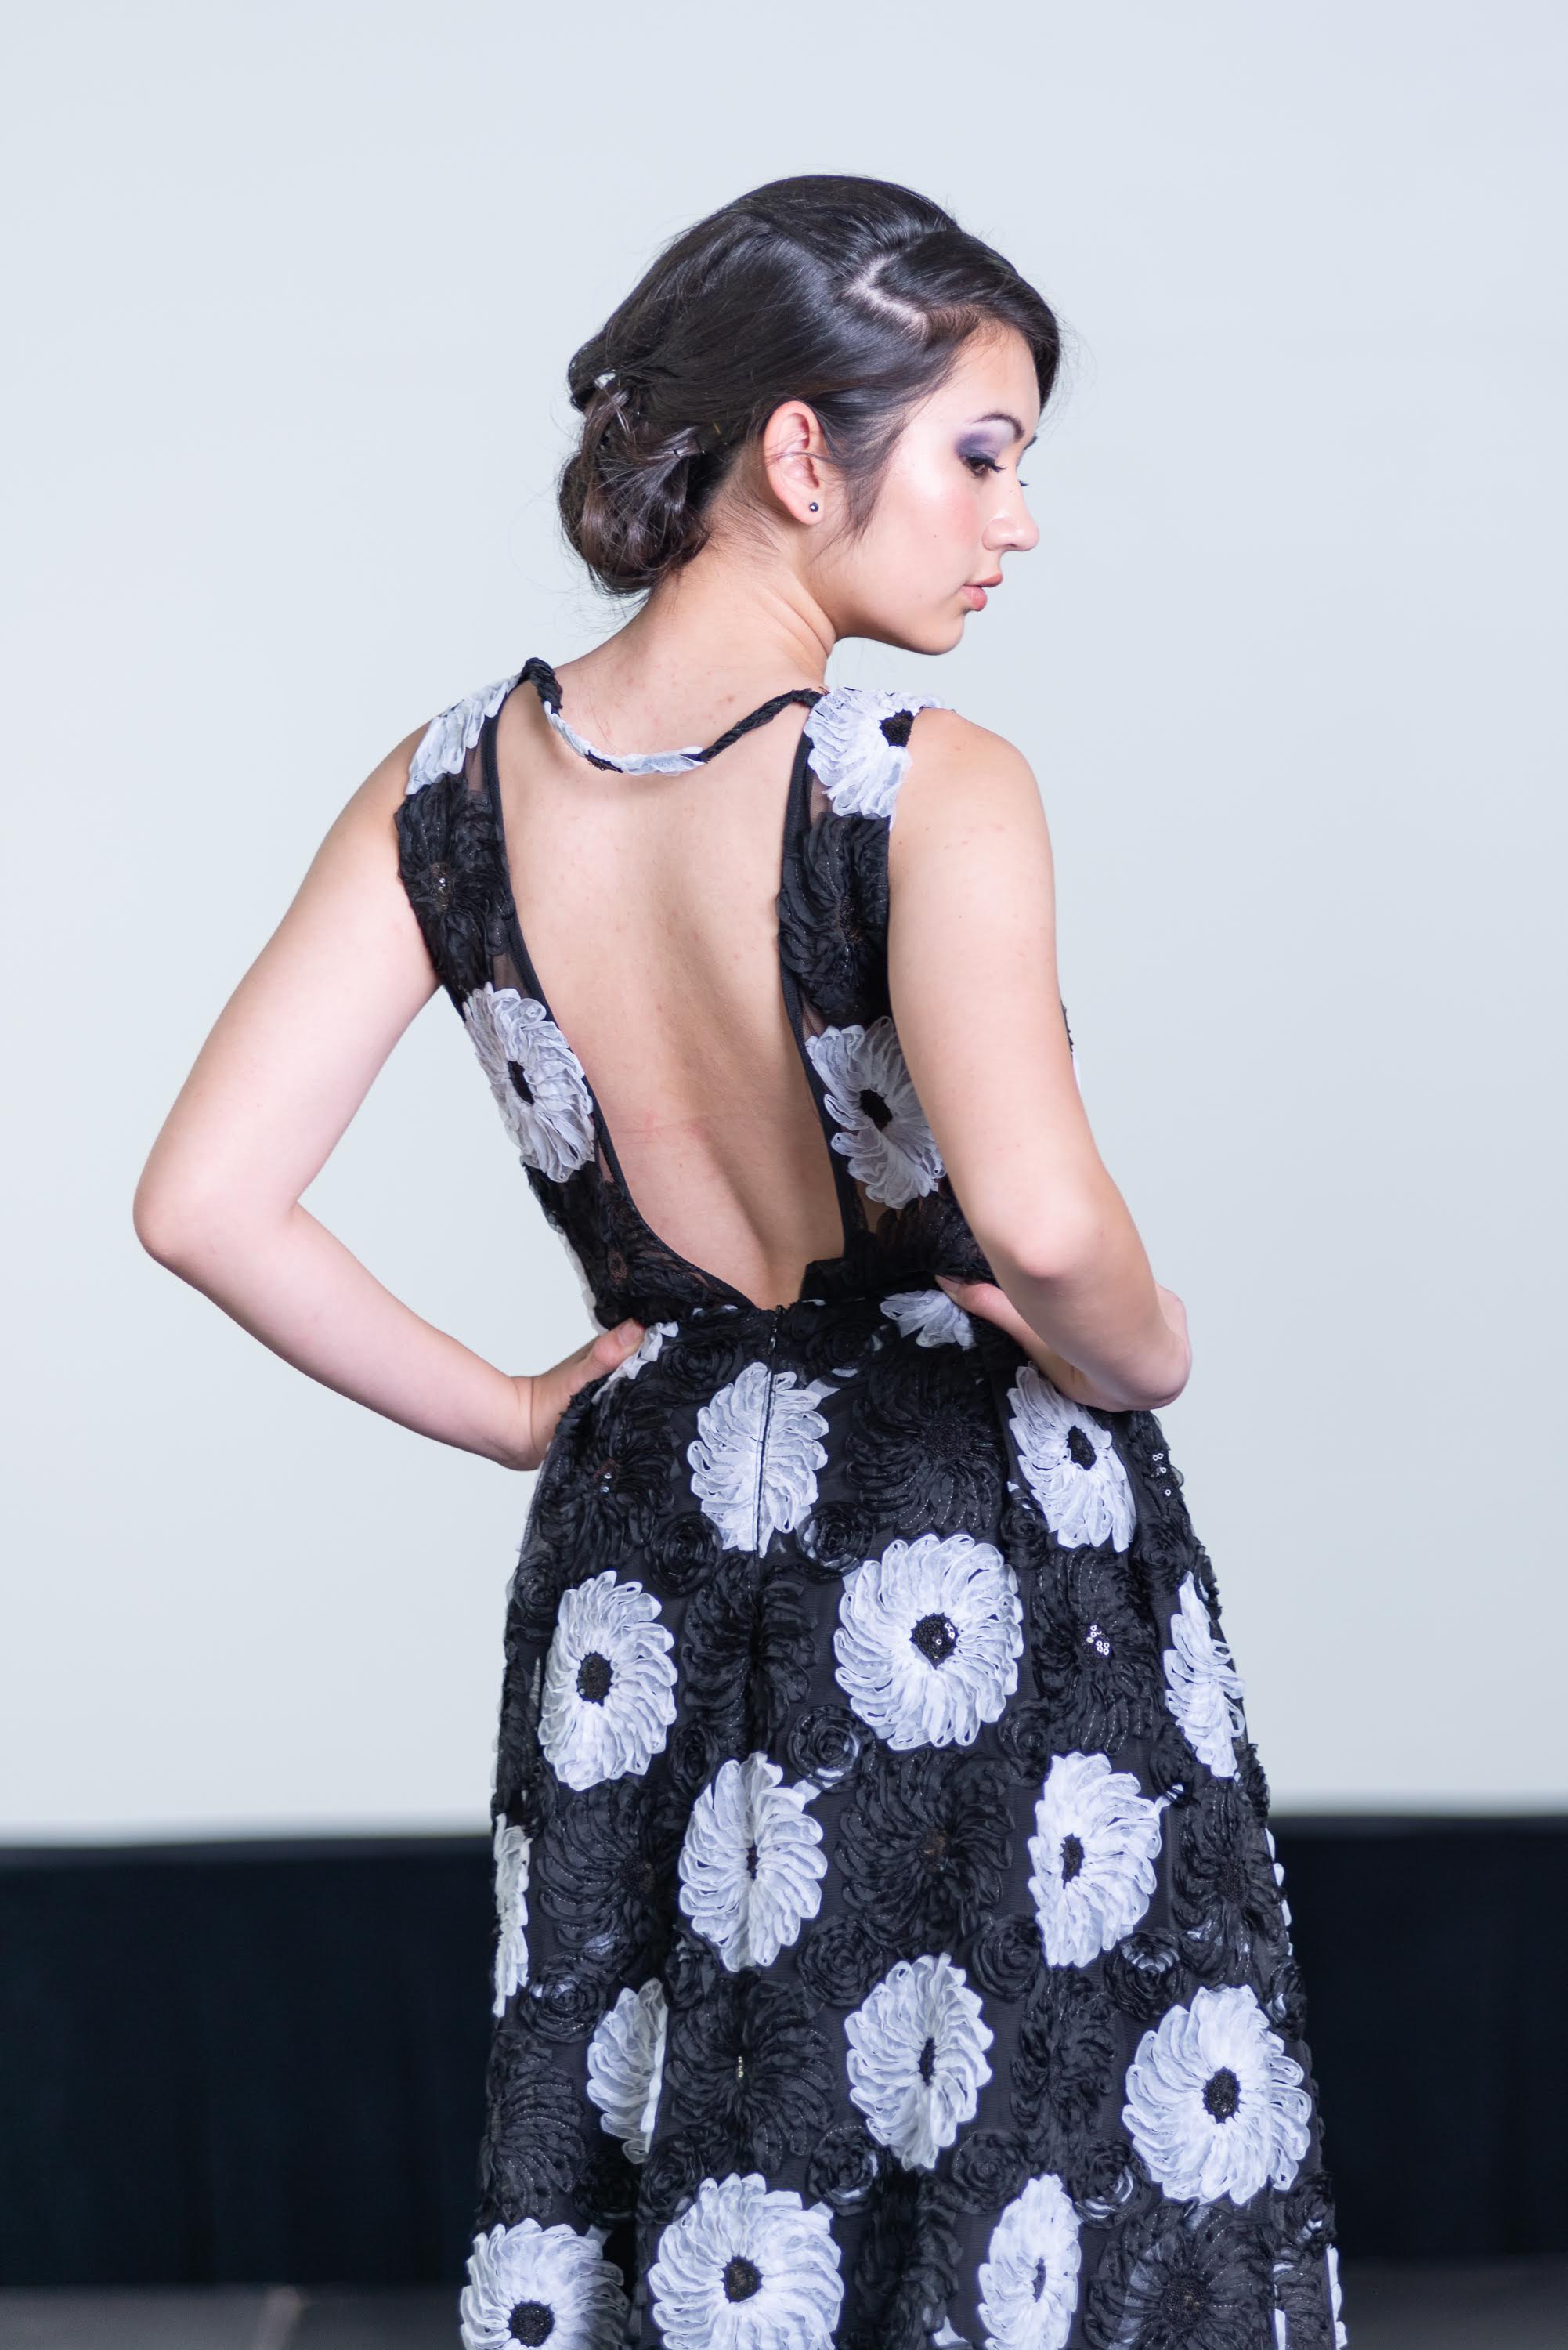 Black Mesh with White Floral Applique and Sequins Floor Length Dress with Pockets